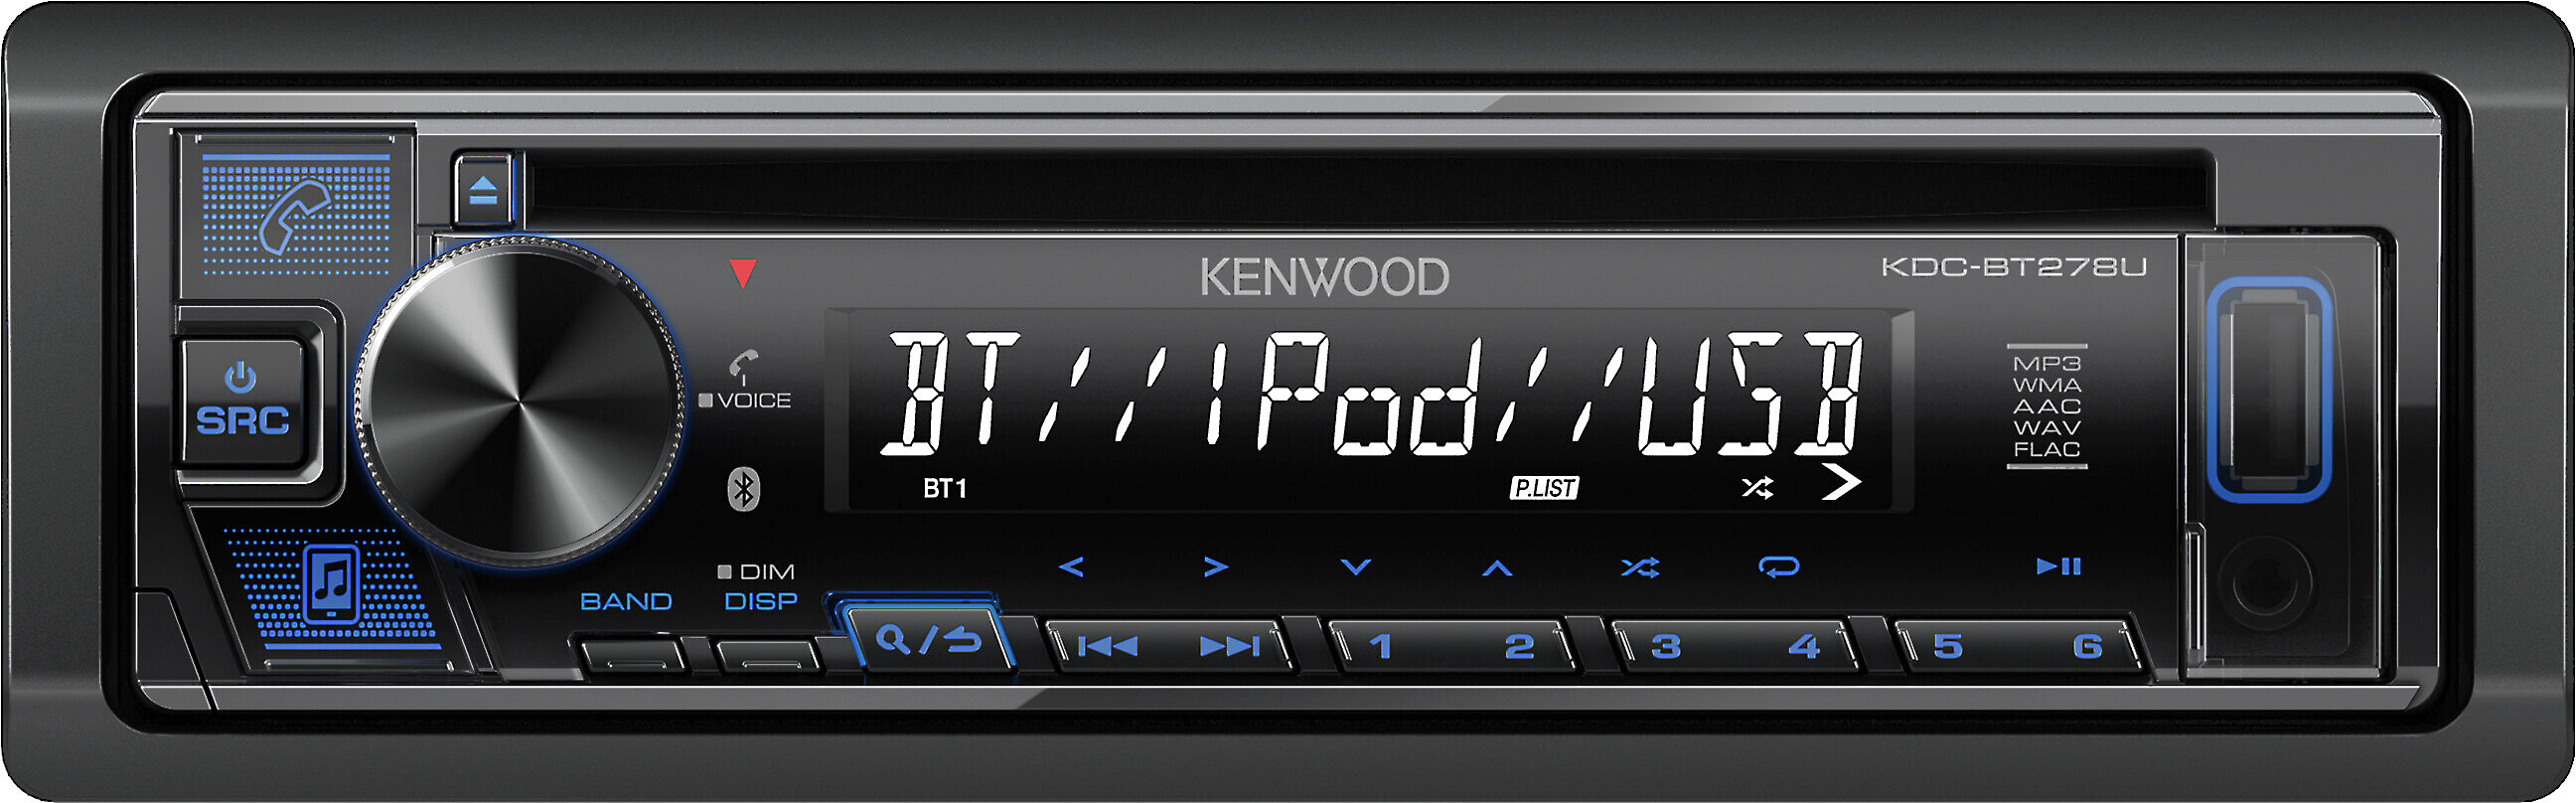 Kenwood KDC-BT278U CD//BT Audio Receiver